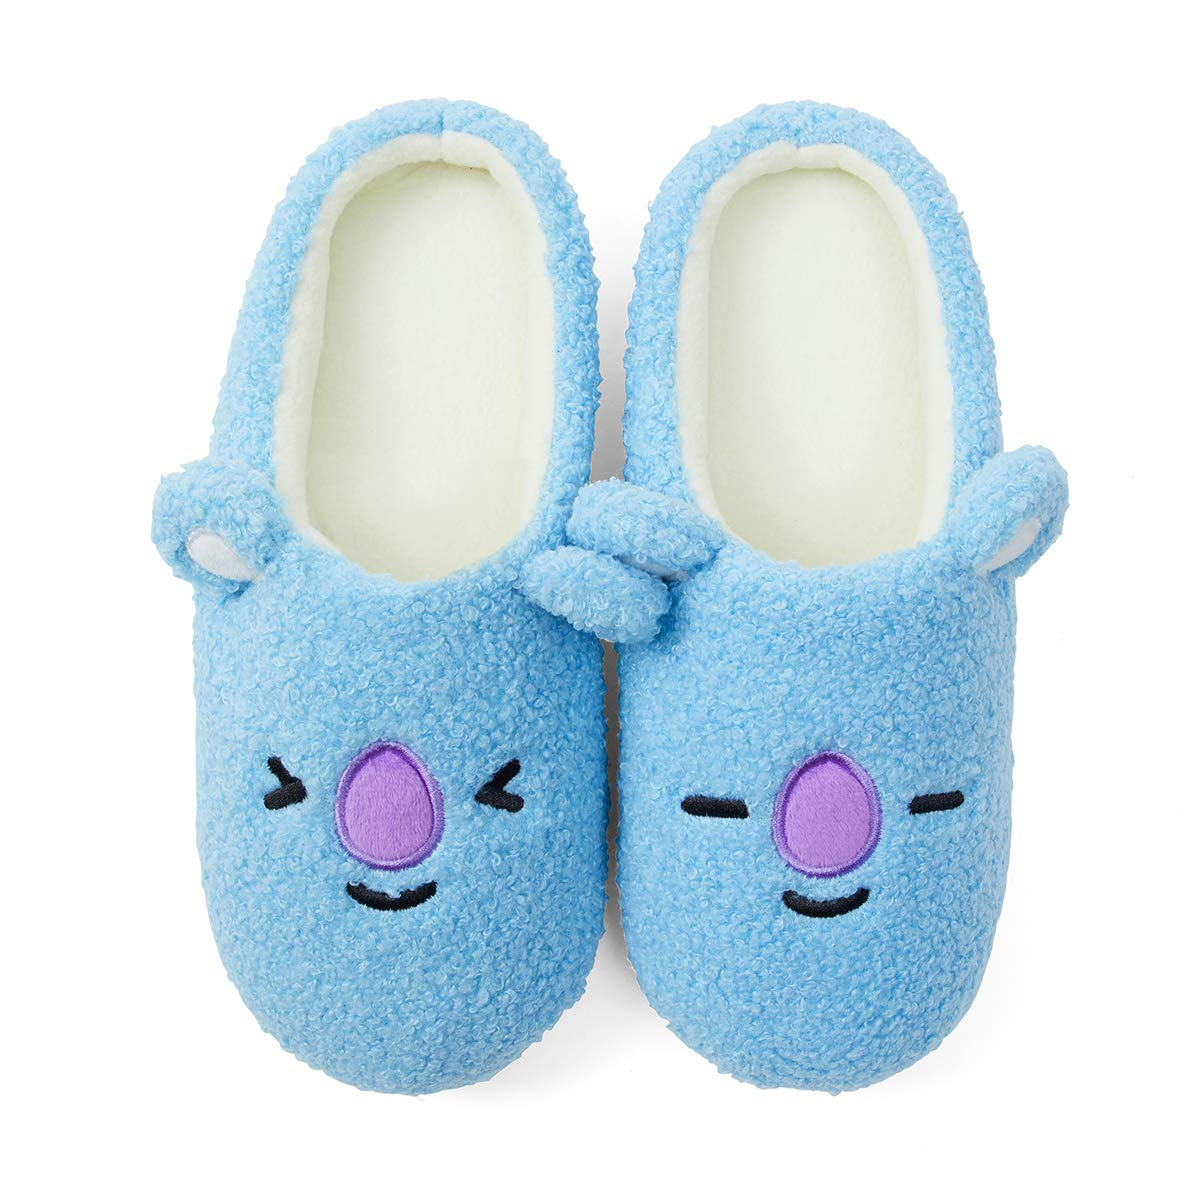 BT21 Official Merchandise by Line Friends Character Ppolgeul Slipper